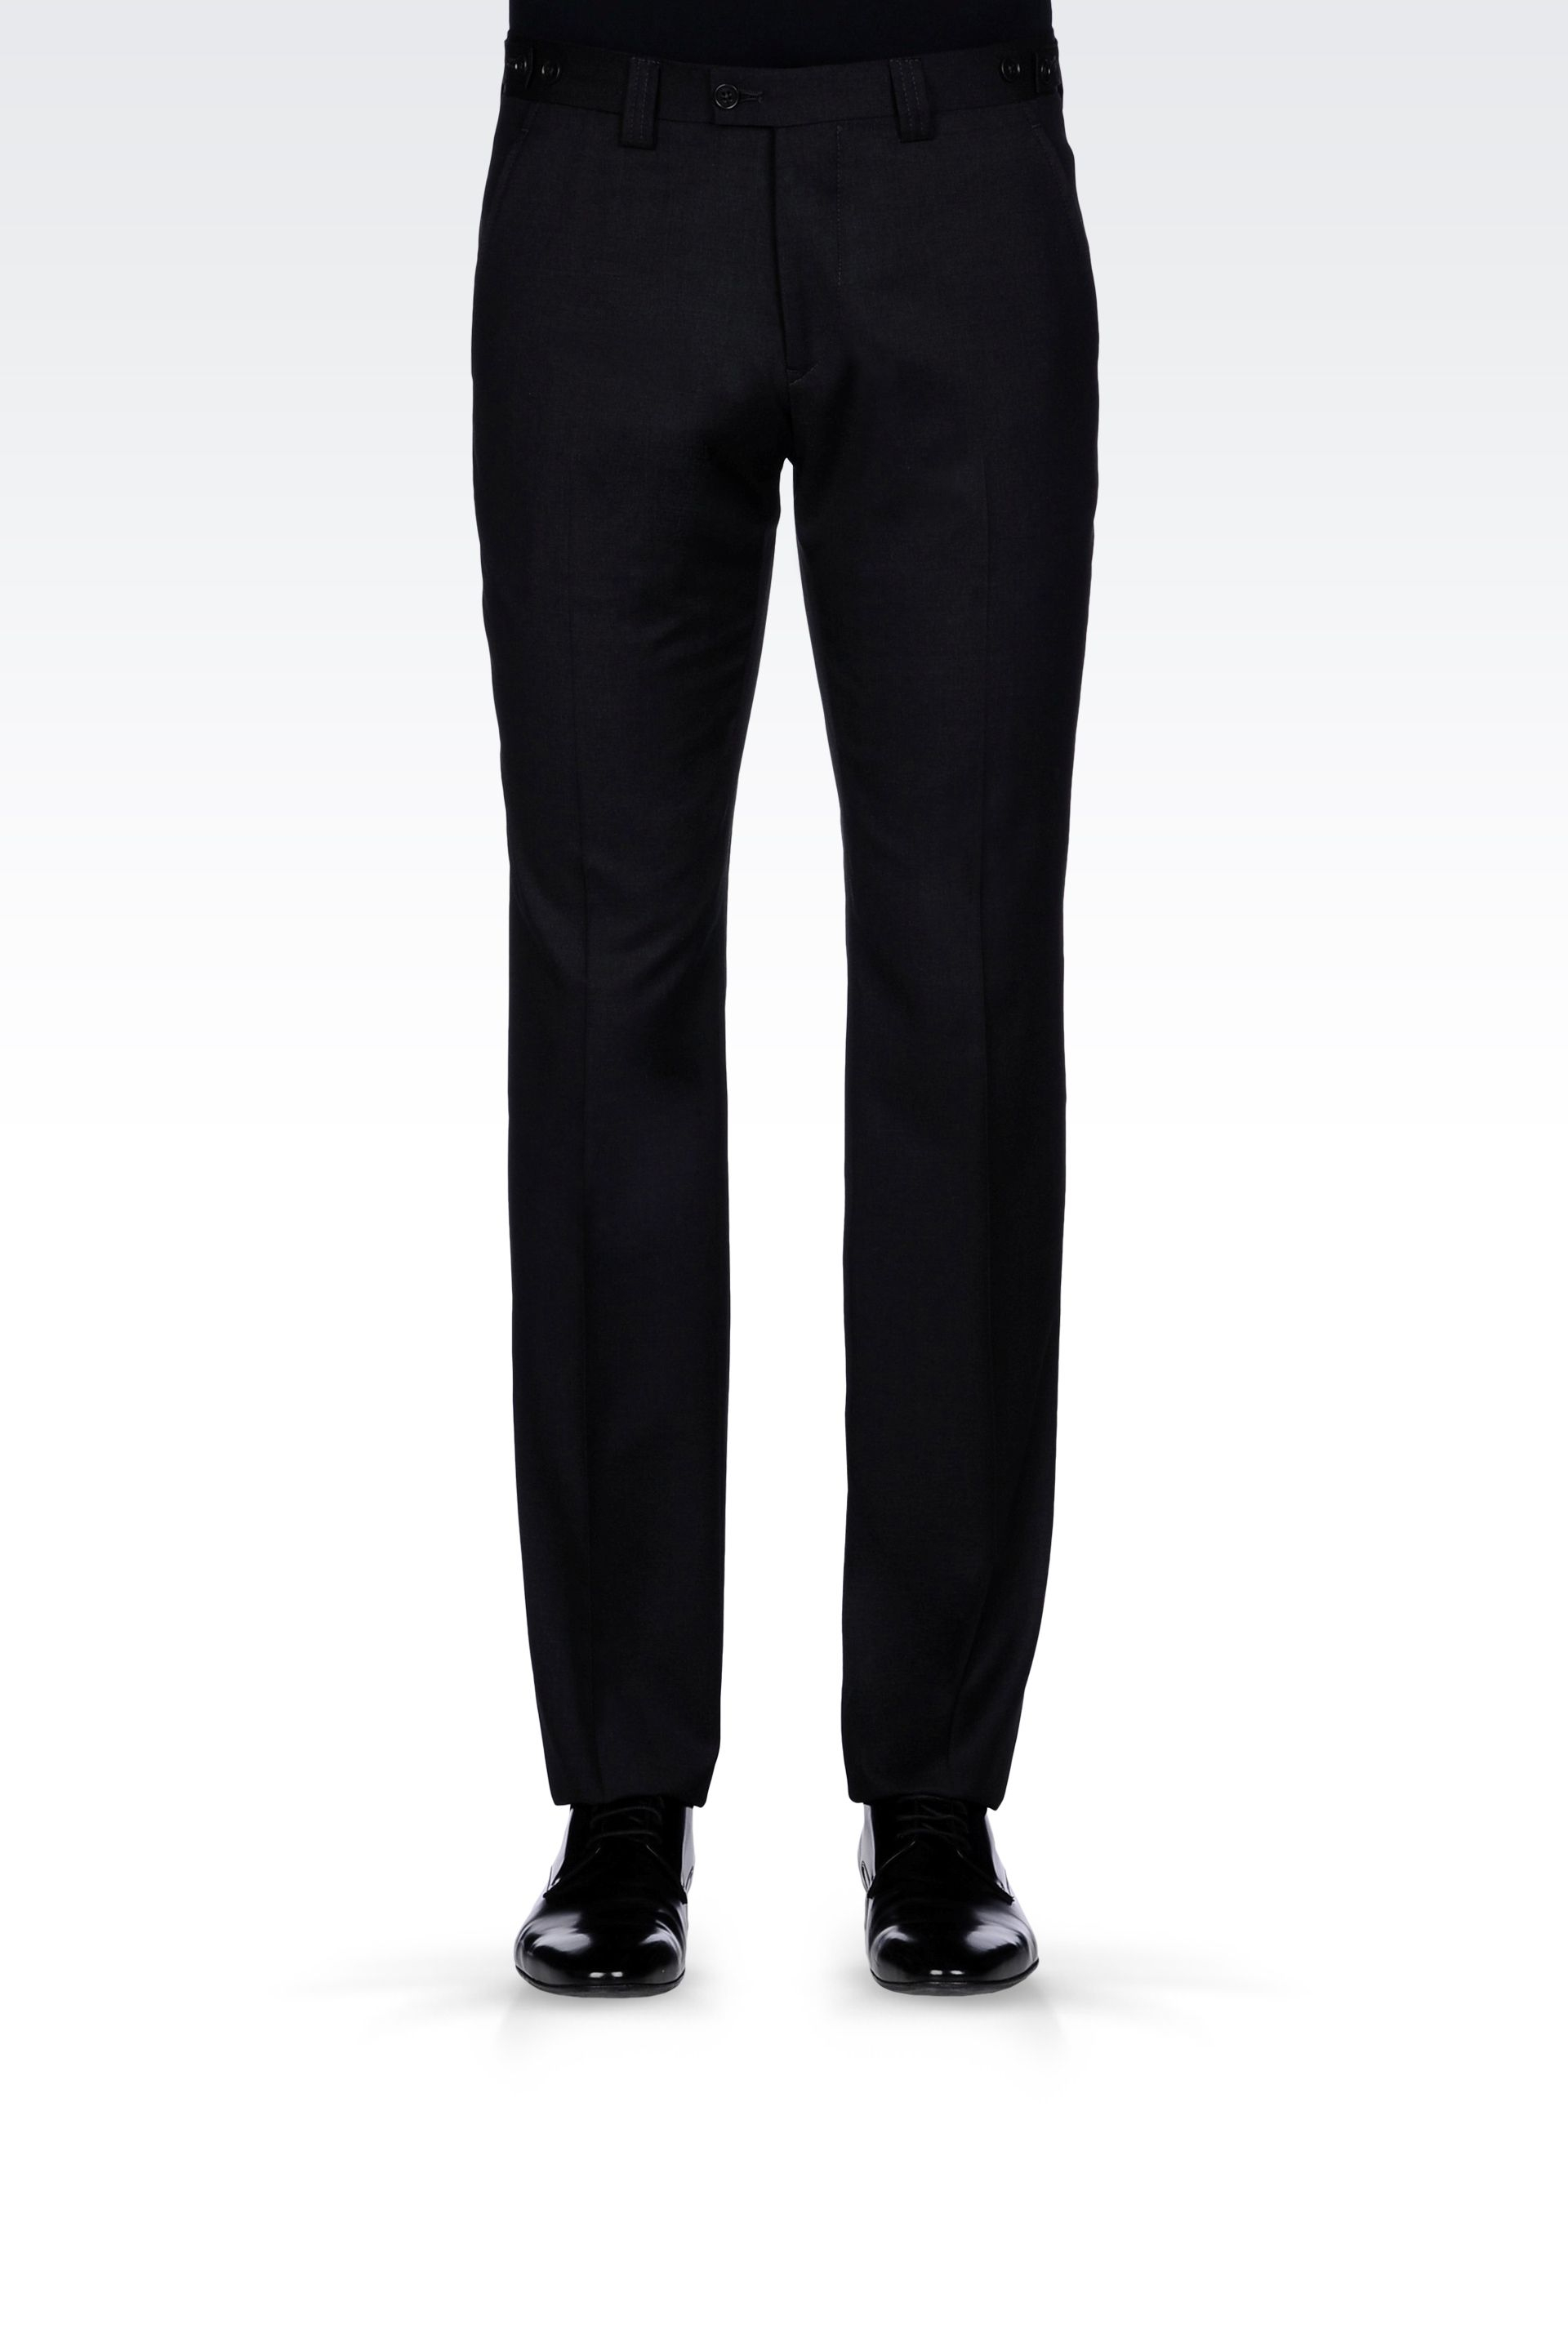 Armani Wool Pants With Double Side Tab Adjusters In Black